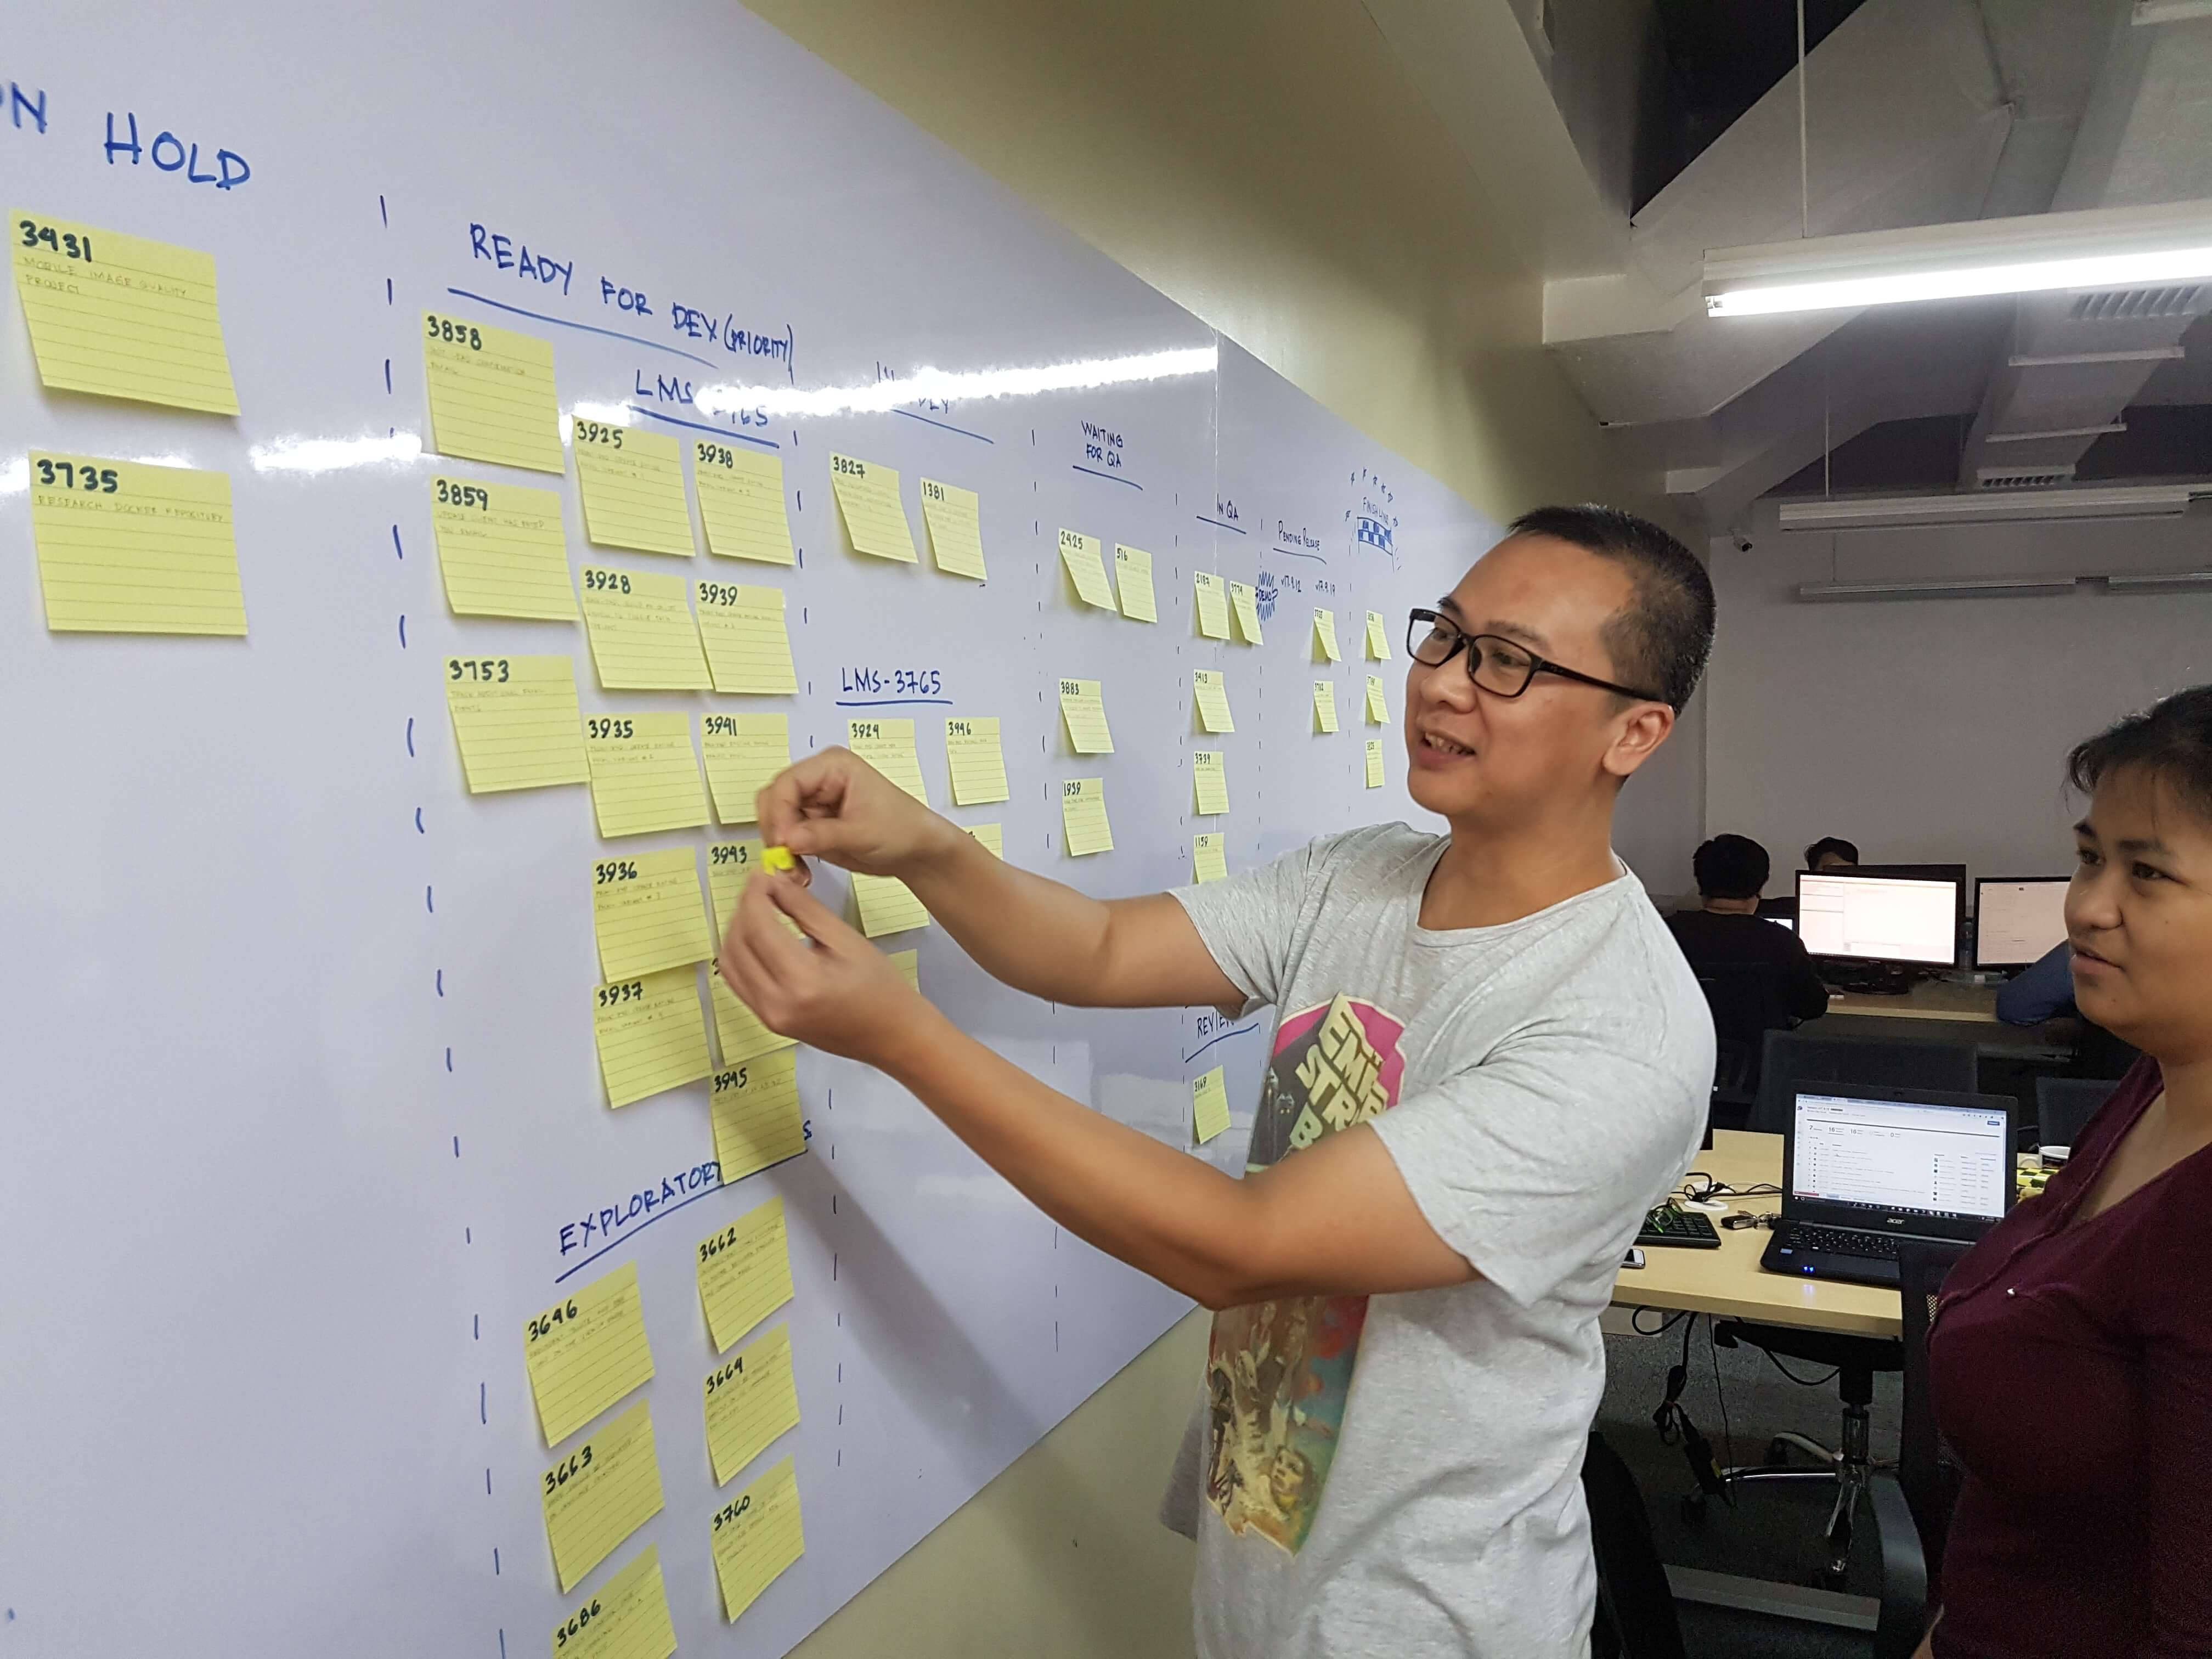 AGILE: The Why and How we do it